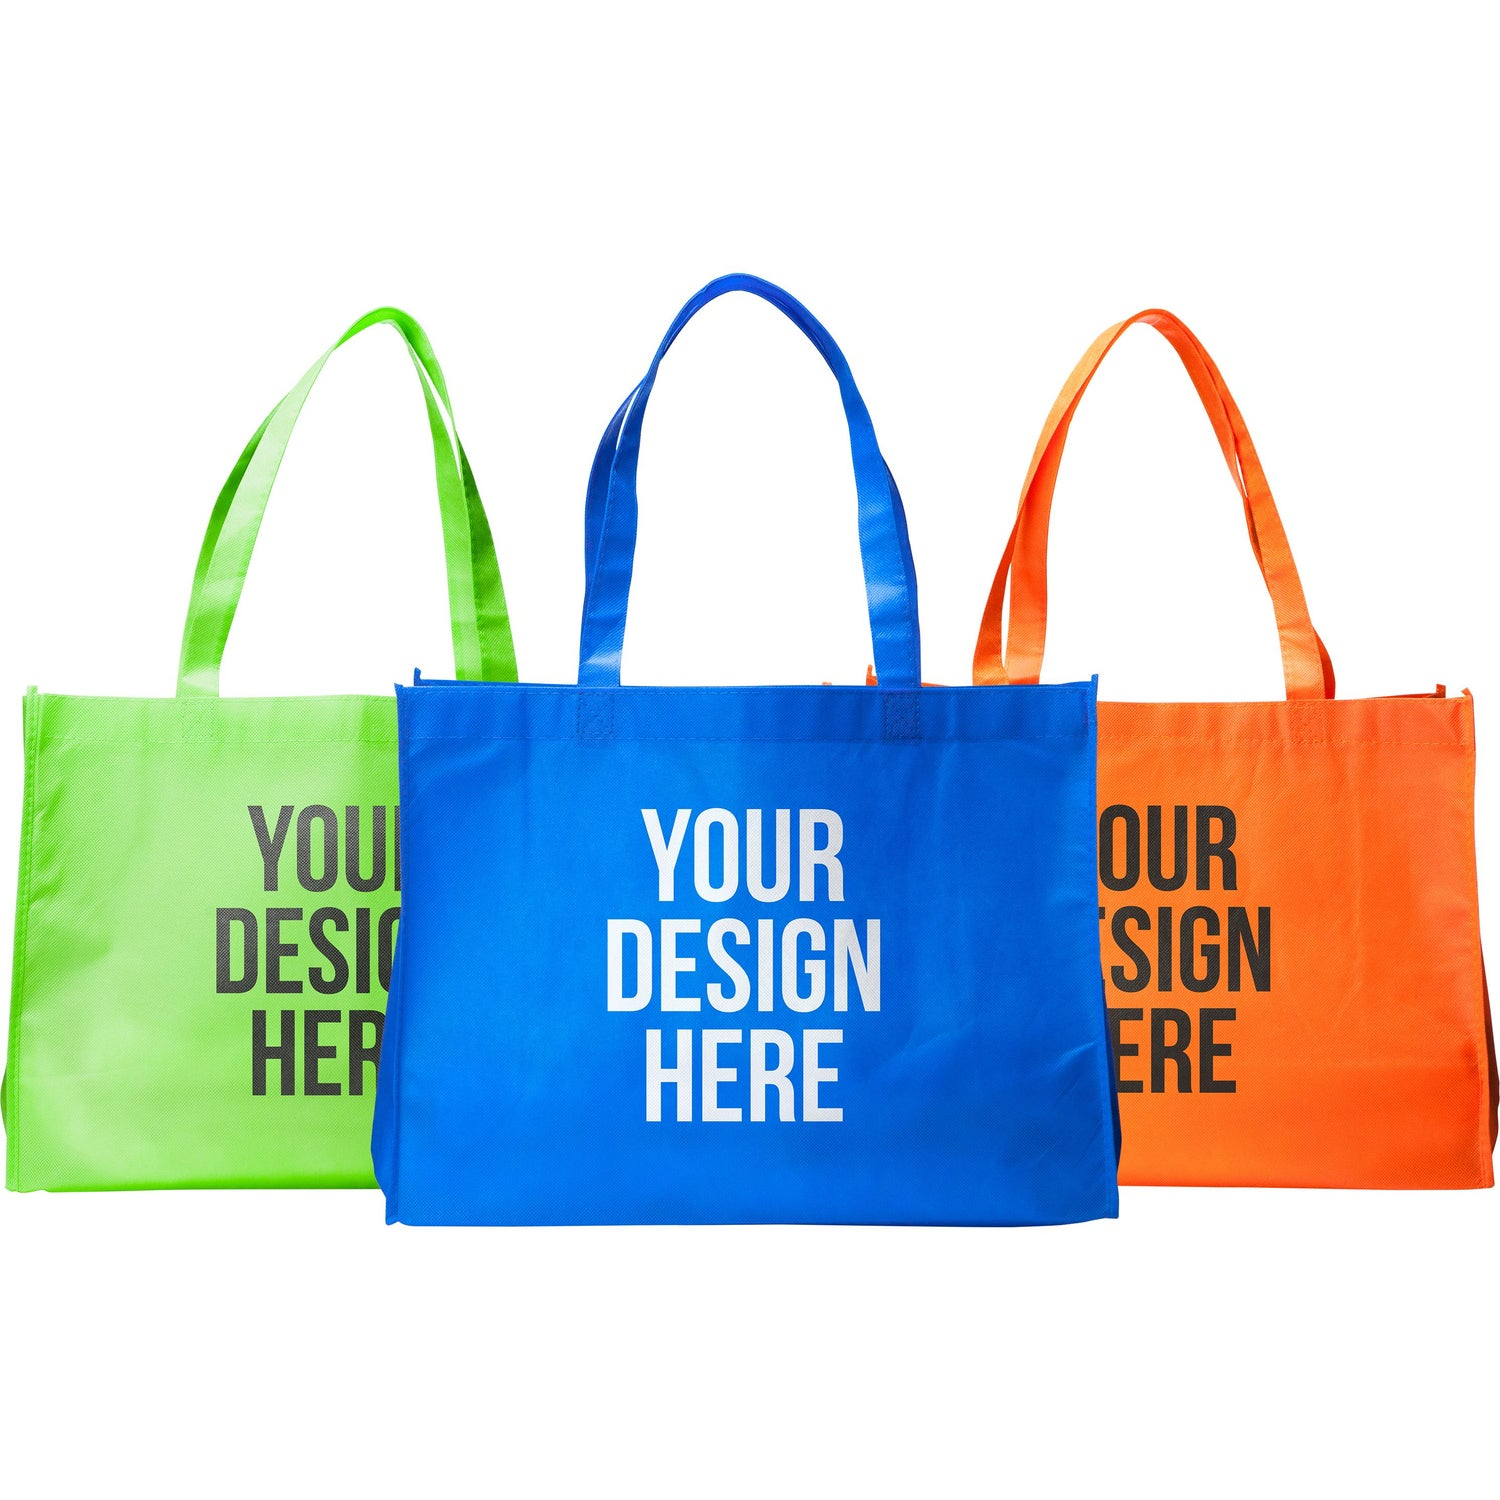 Promotional medium eco friendly non woven tote bags with